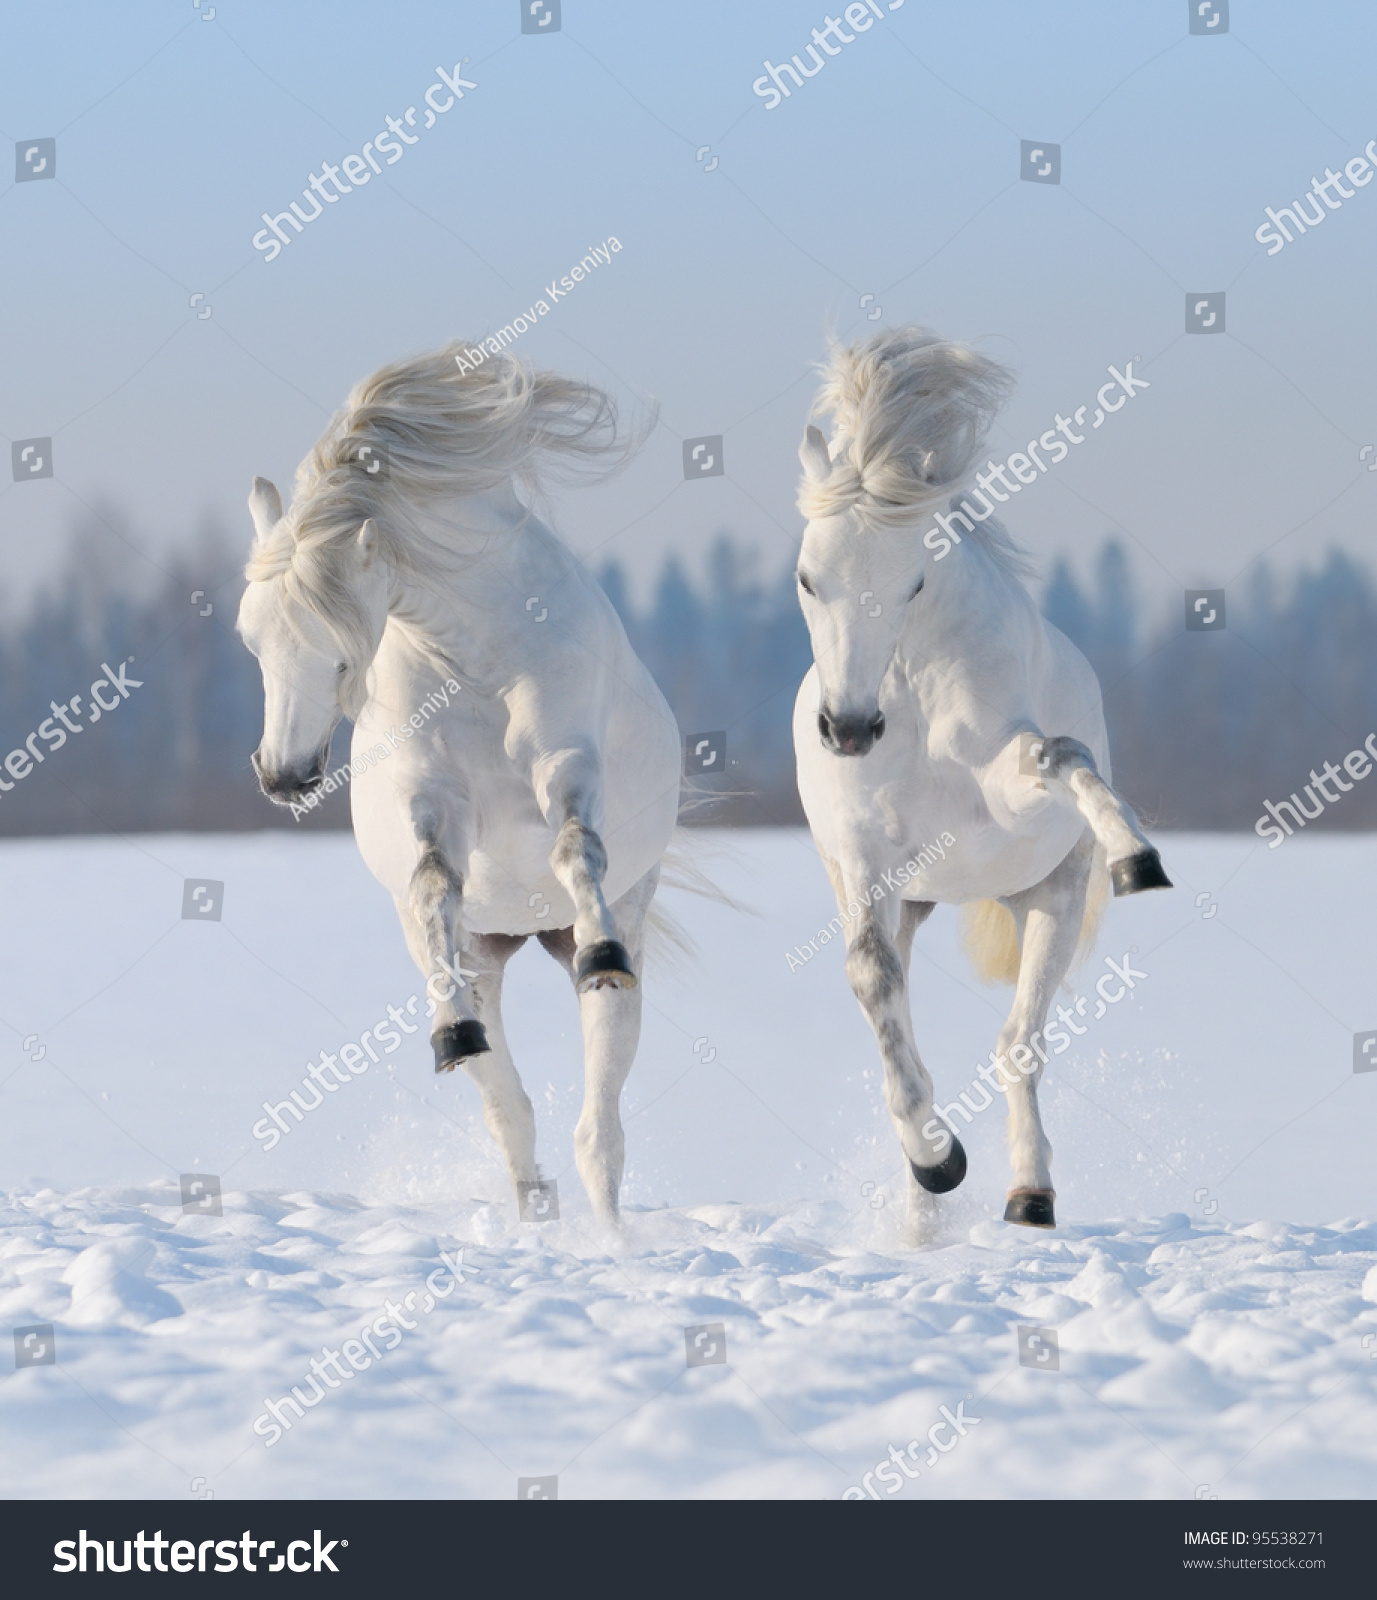 Running Horses Silhouette Wall Border Stock Photo Two Galloping Snow White Horses